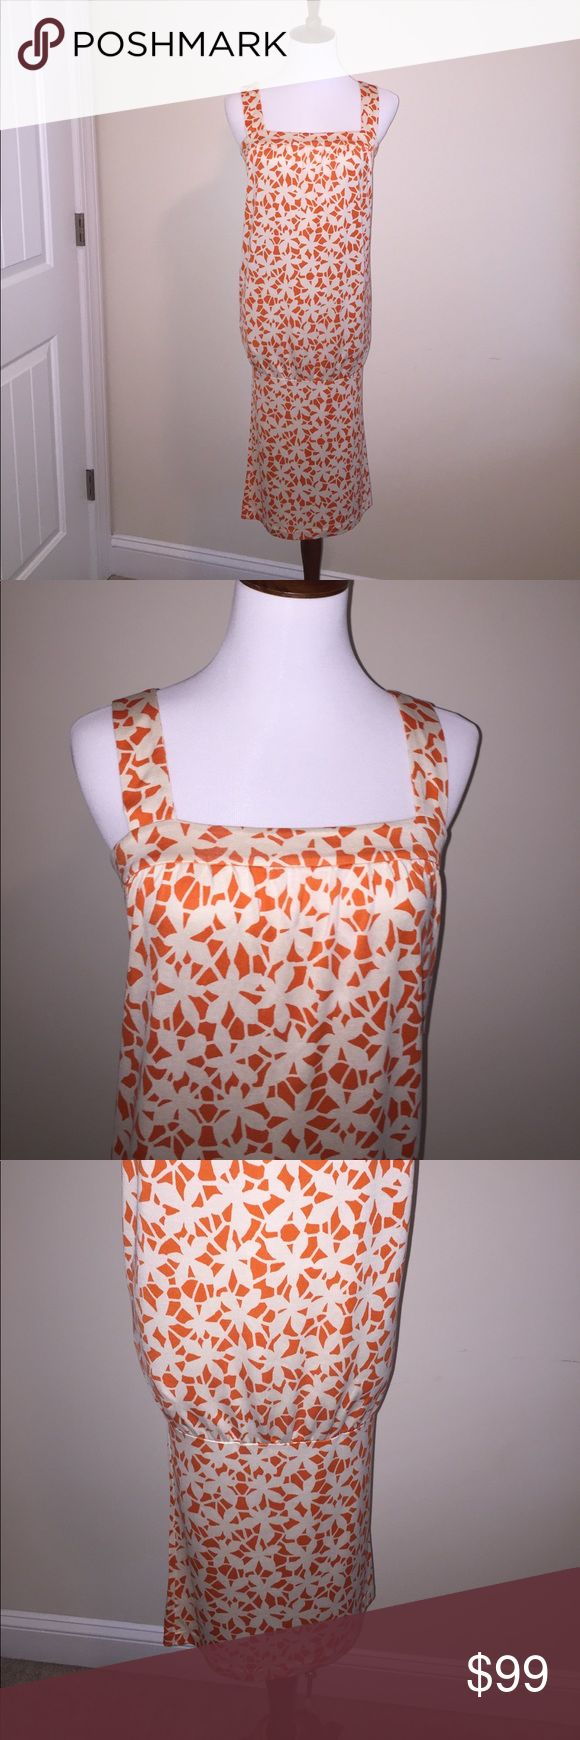 🆕DIANE von FURSTENBERG Silk Dress DIANE von FURSTENBERG Silk Summer Dress w/ POCKETS! Great vibrant orange w/ cream color in a unique dvf print. Fabric 100% Silk but feels like cotton and does have stretch. Size 6 with a drop waist that converts to a pencil skirt bottom. This is a super trendy designer dress thats just so cozy & comfy in the summer, great chance to own a great designer for less. Great used condition. Small pen mark by pocket per pic & barely noticeable dry cleaner mark on…